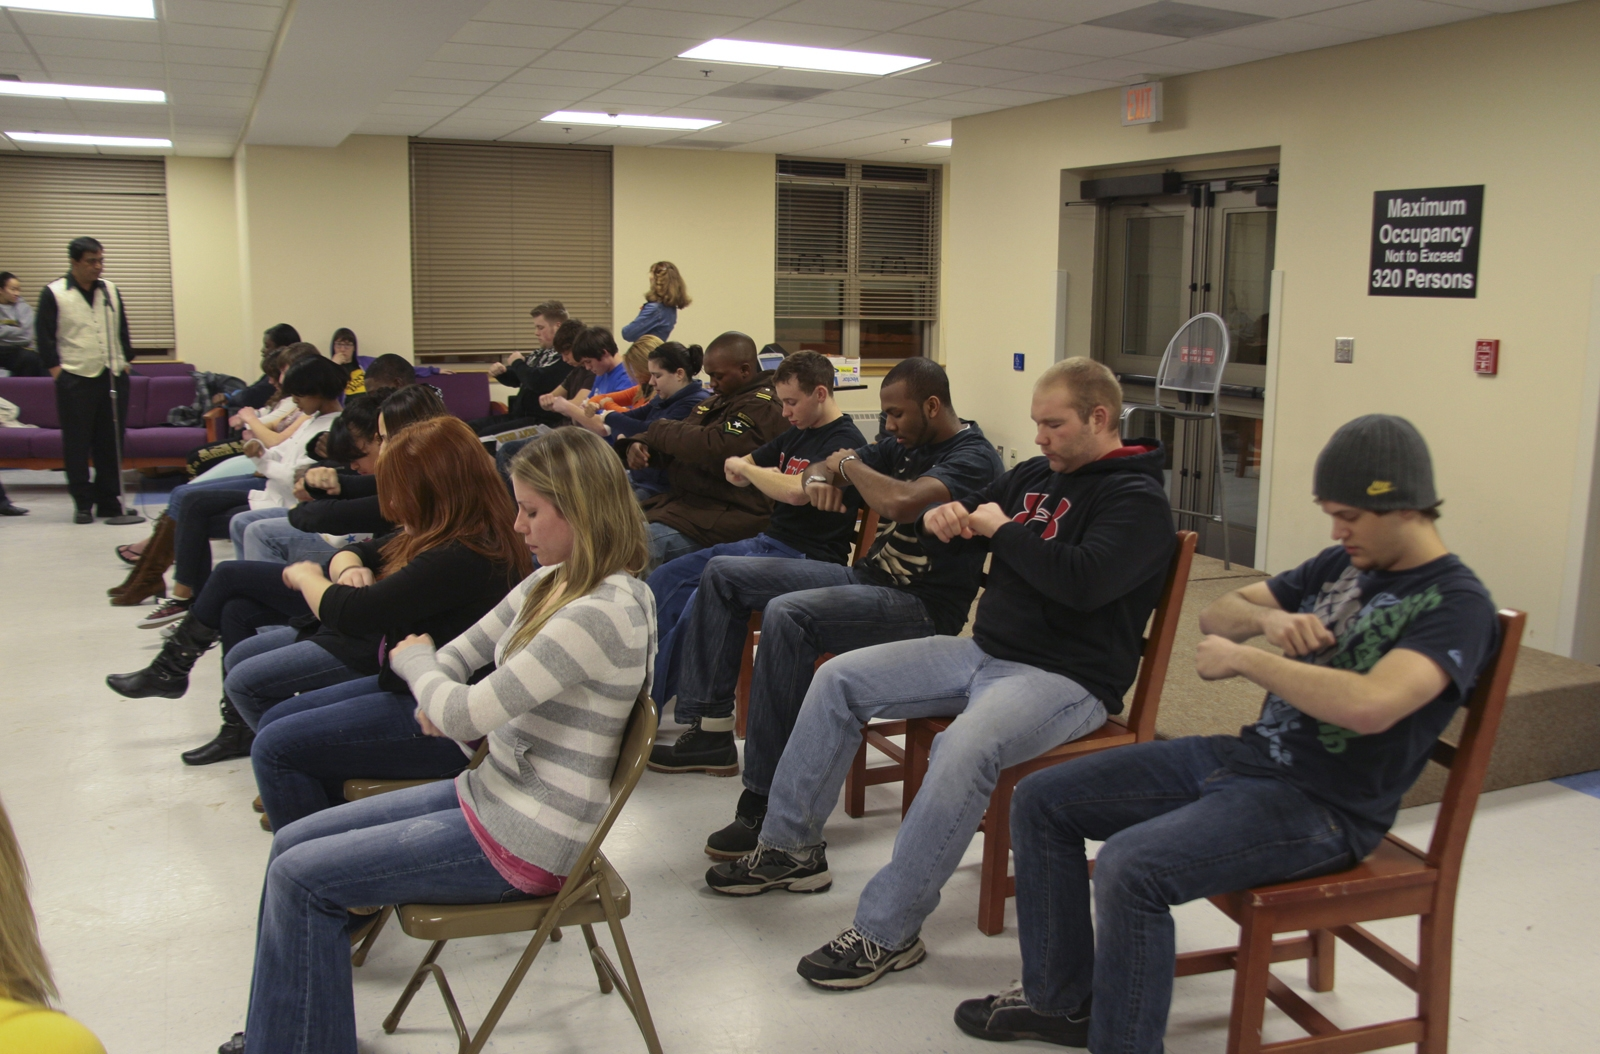 Doc provides instruction to hypnosis participants